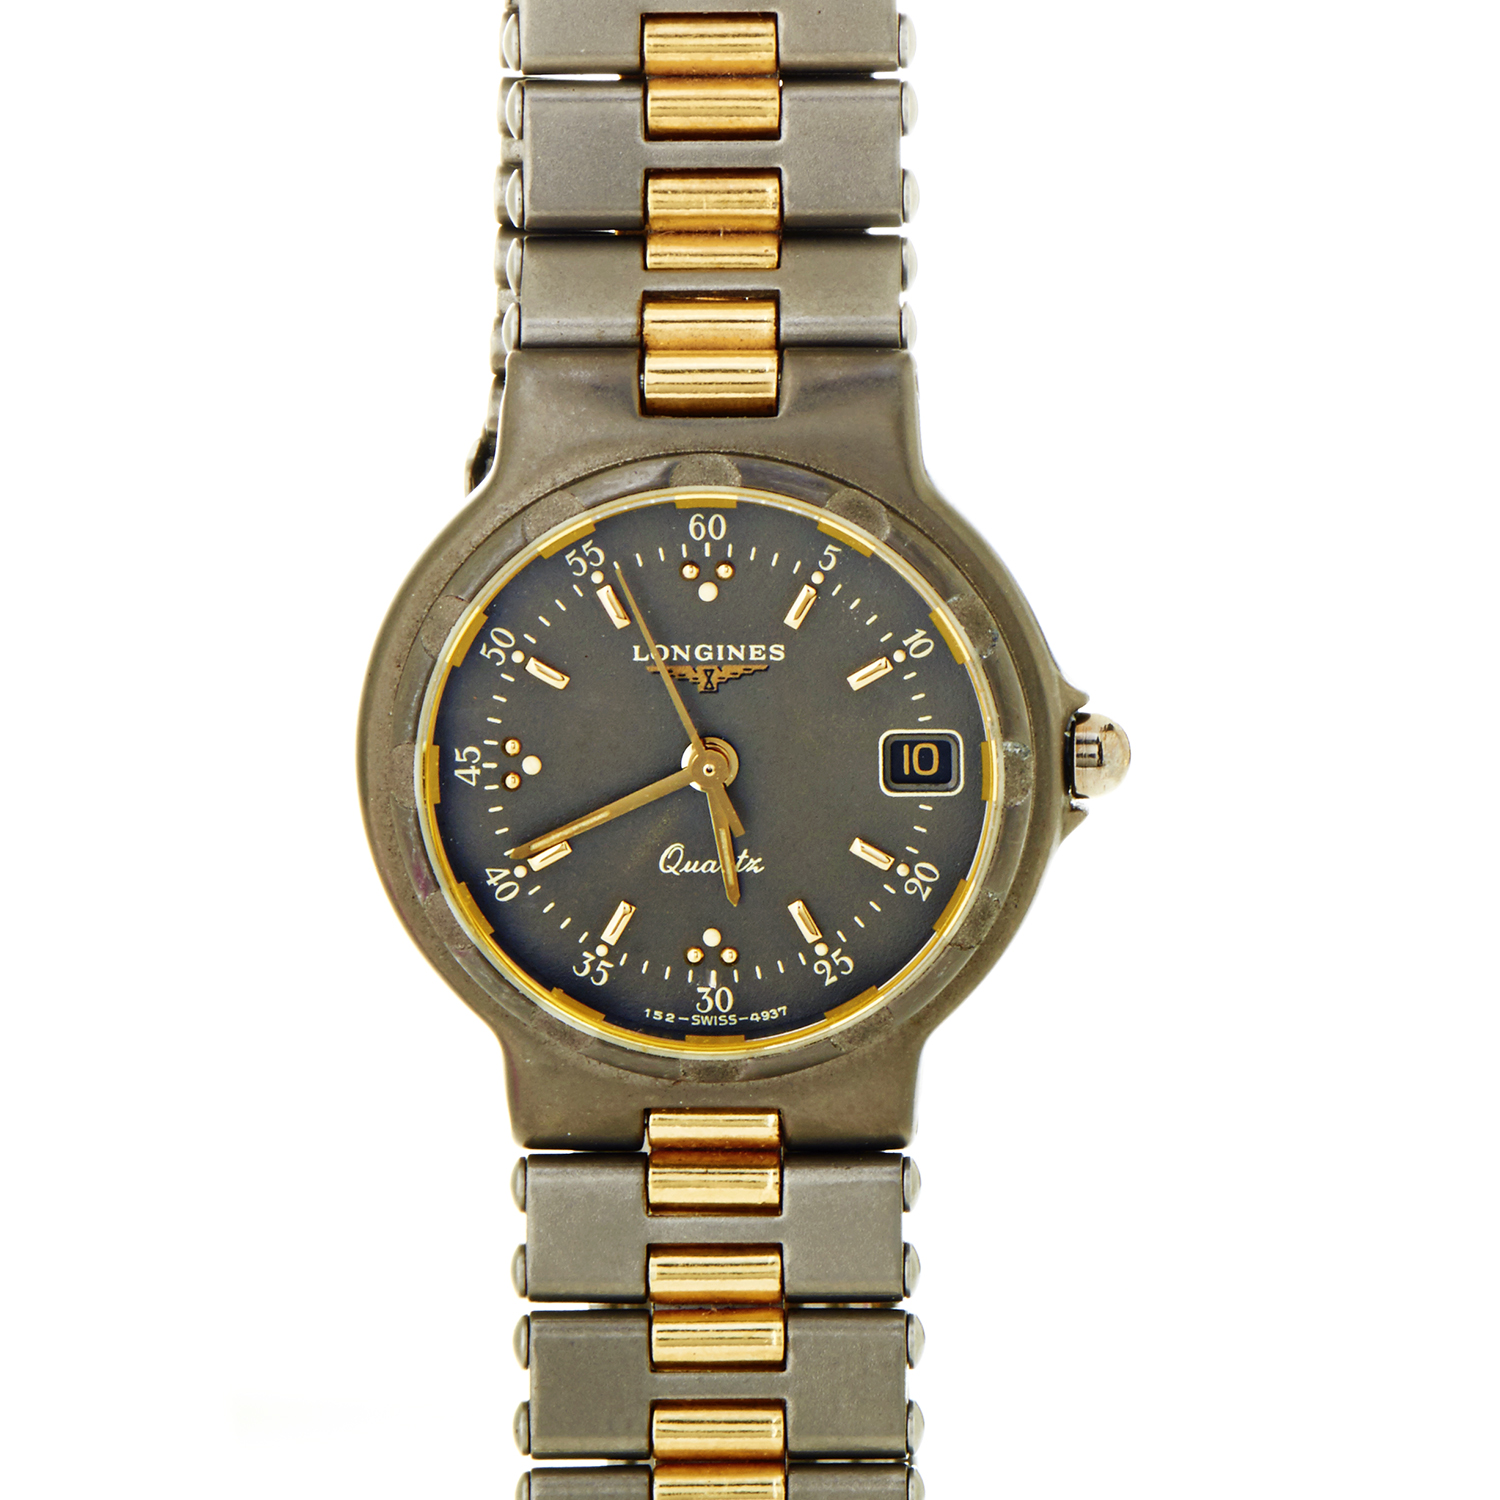 Conquest Women's Gold Plated Stainless Steel Quartz Watch L4.393.8.90.4